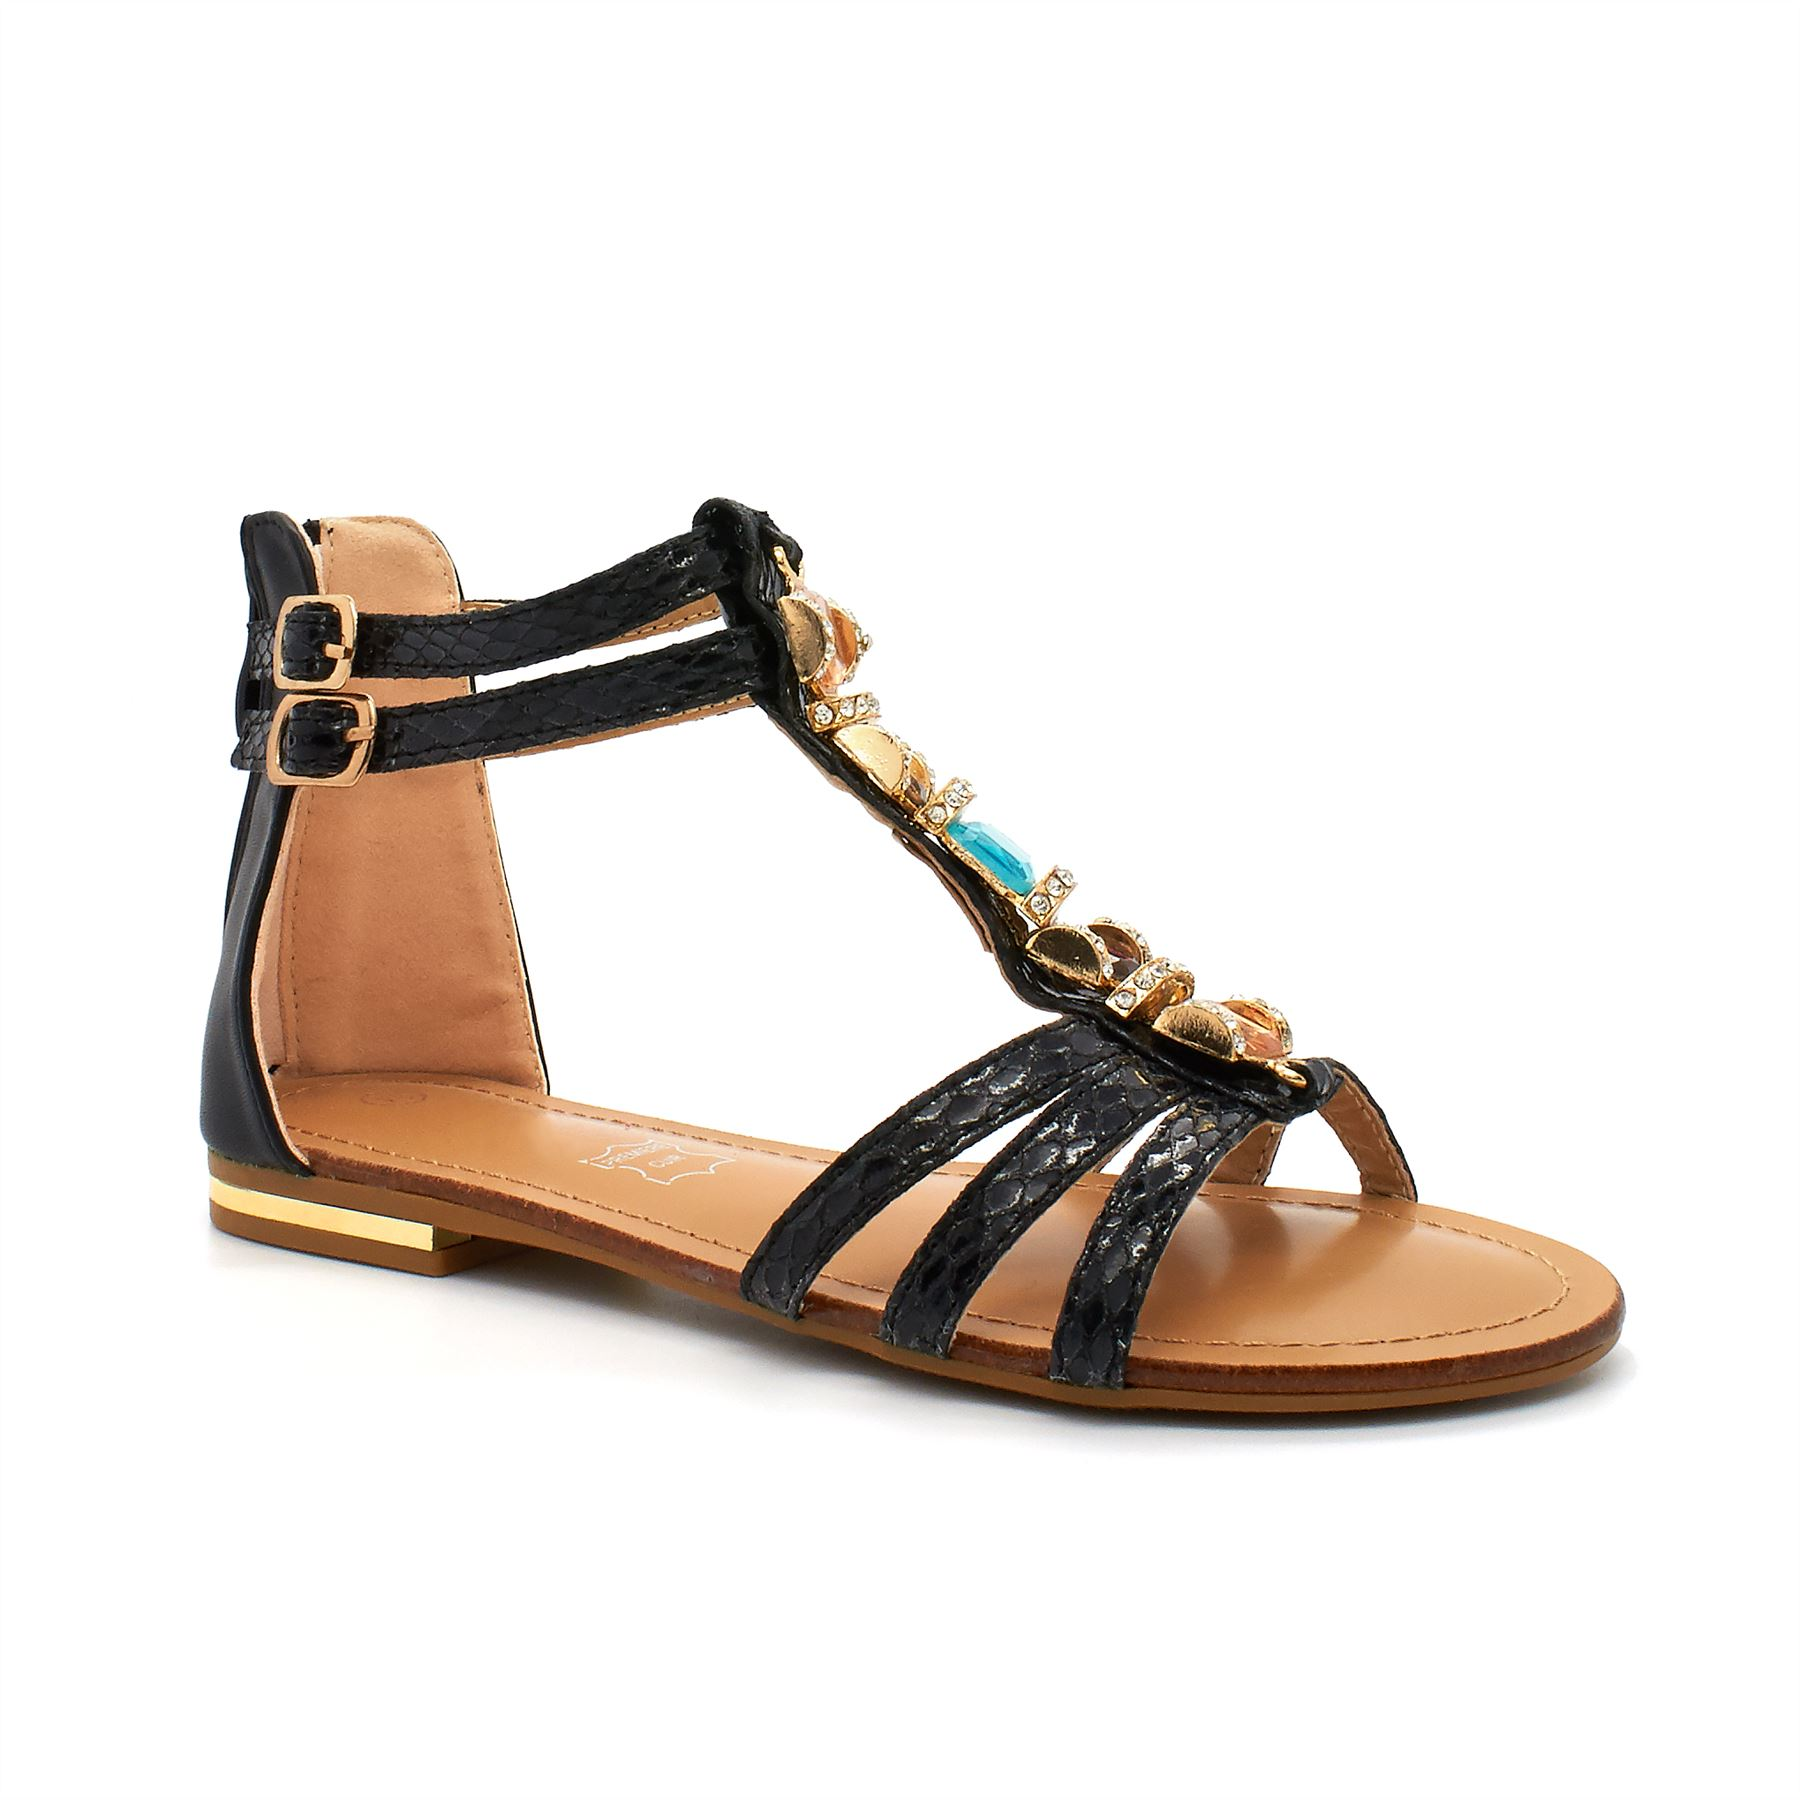 Shop for cheap Kids' Shoes? We have great Kids' Shoes on sale. Buy cheap Kids' Shoes online at lidarwindtechnolog.ga today! Kids () Teenager () Toddler () Infant (17) more Girls' Shoes Leatherette Spring / Fall Comfort / Flower Girl Shoes Heels Rhinestone / Bowknot / Sparkling Glitter for Silver / Blue / Pink. $